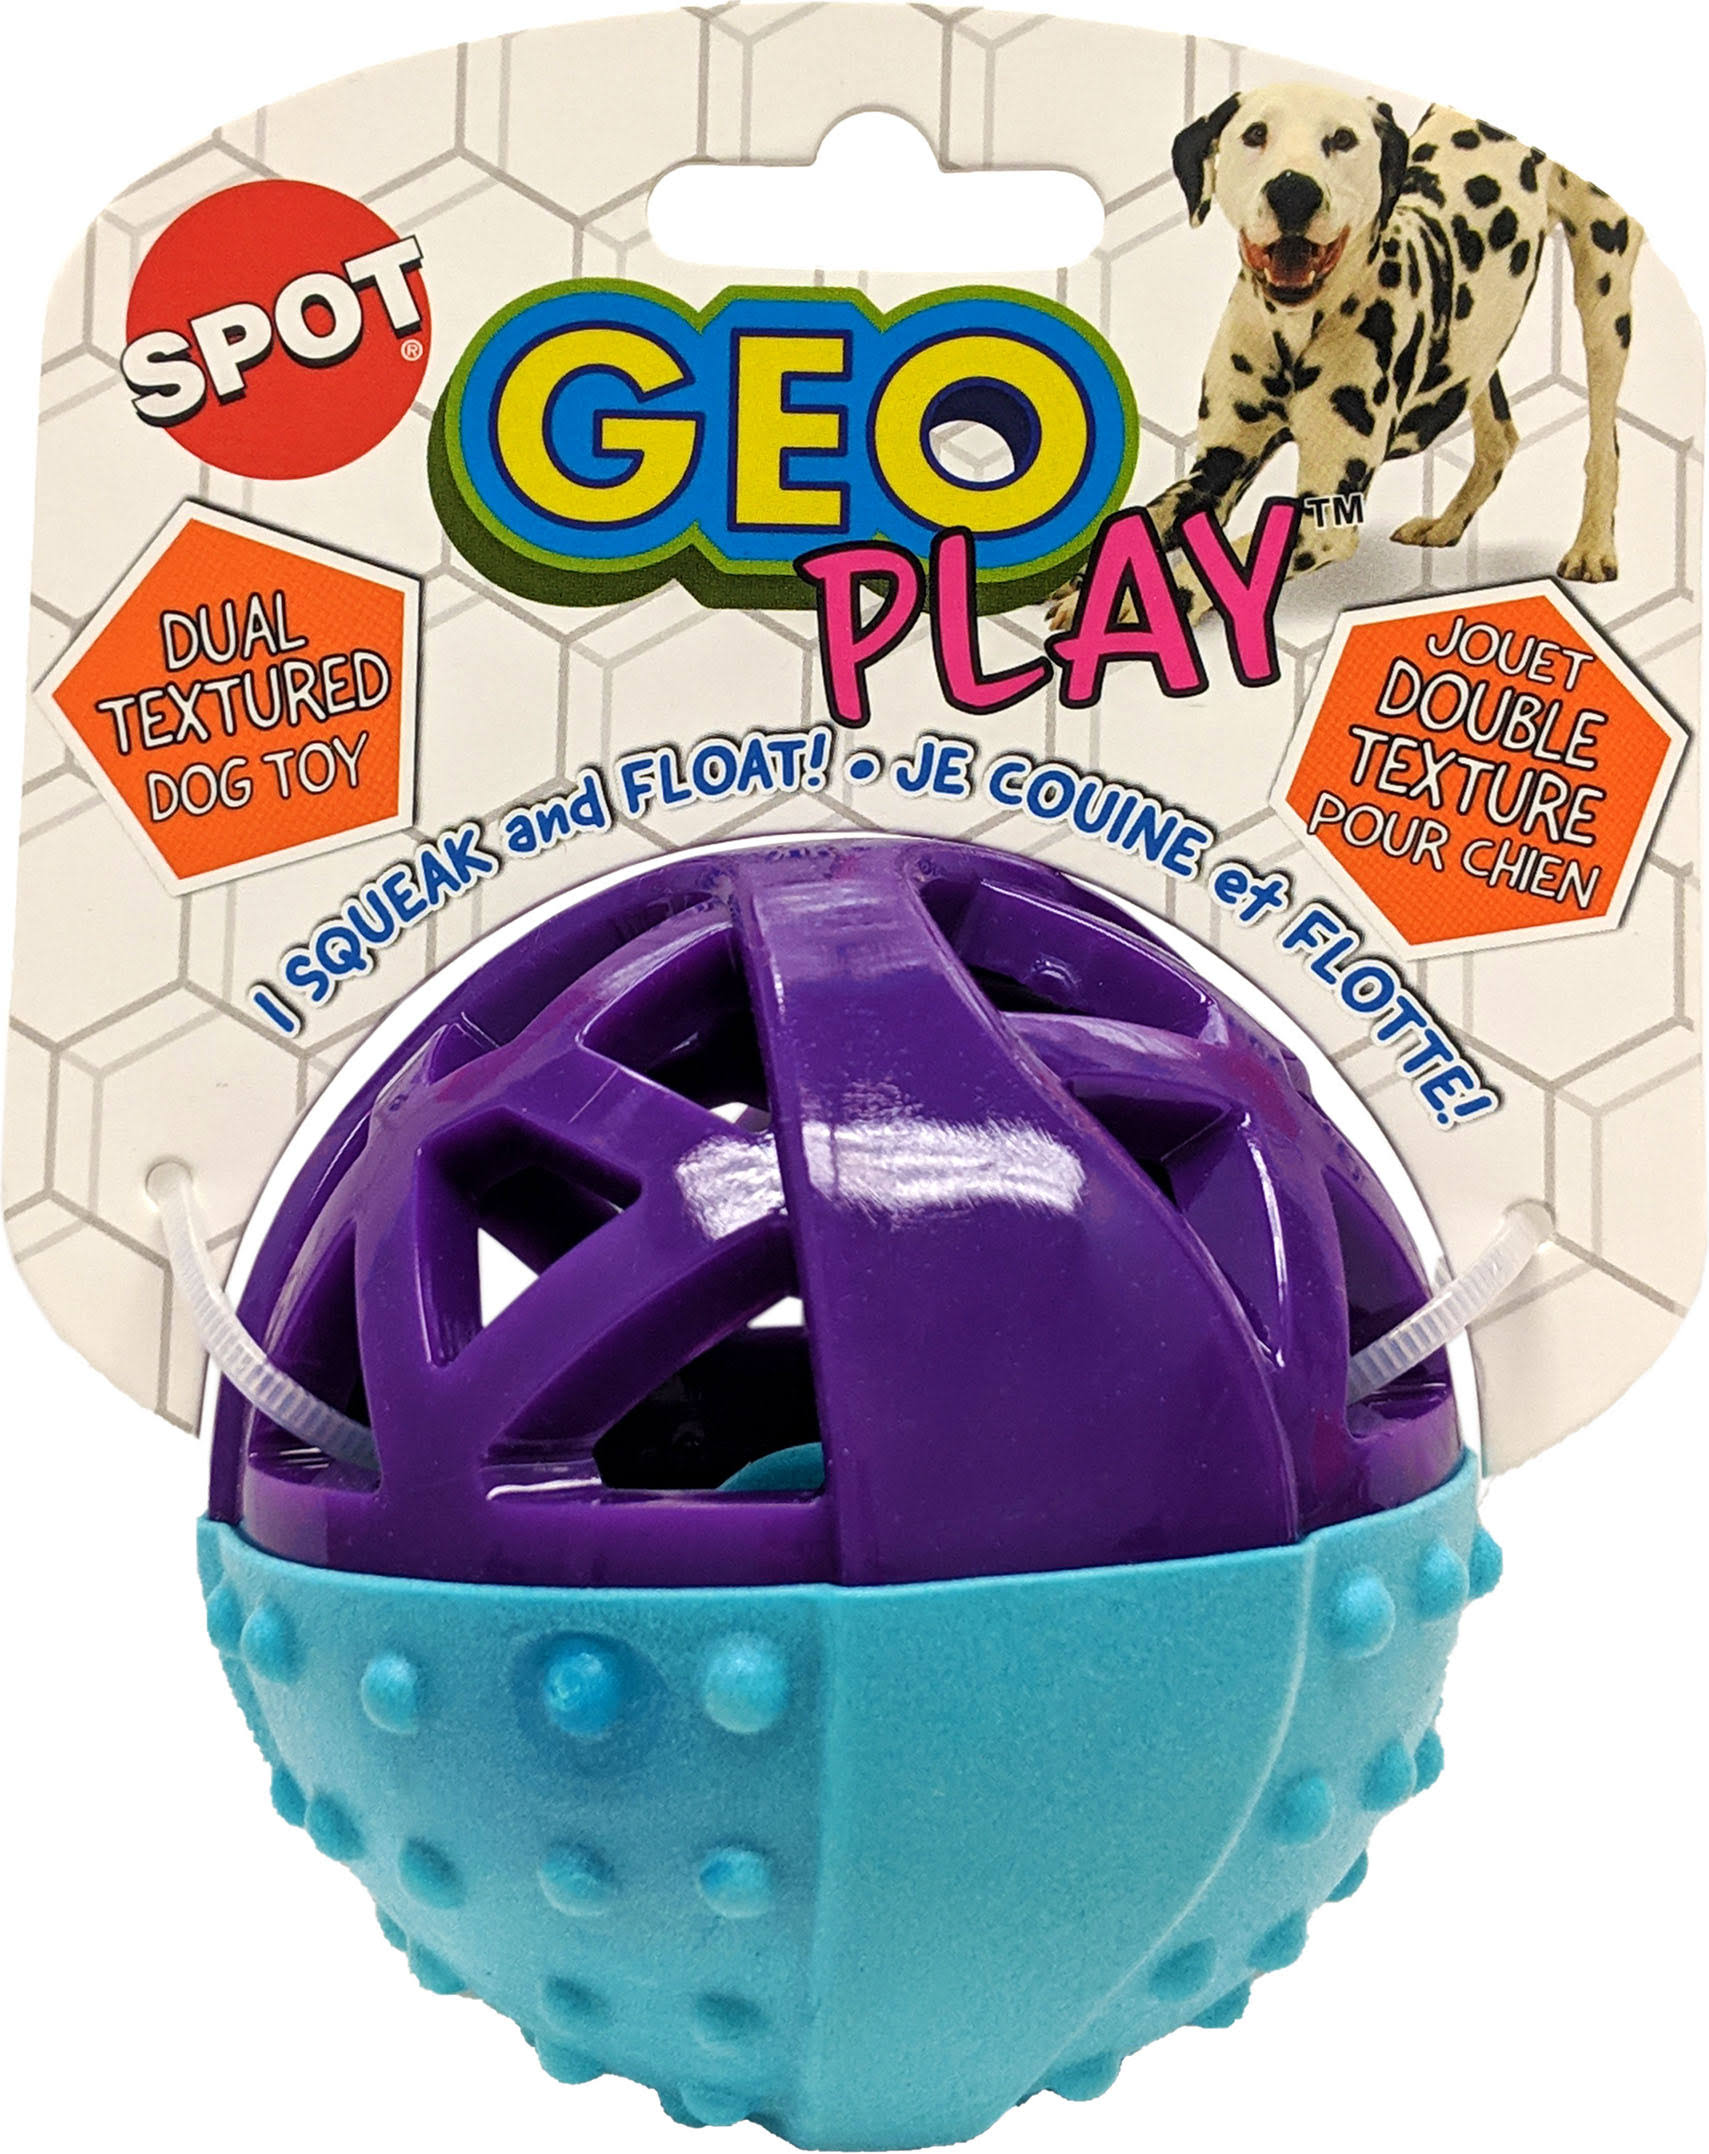 Ethical Dog 54531 Geo Play Ball, Assorted, 3.5 inch